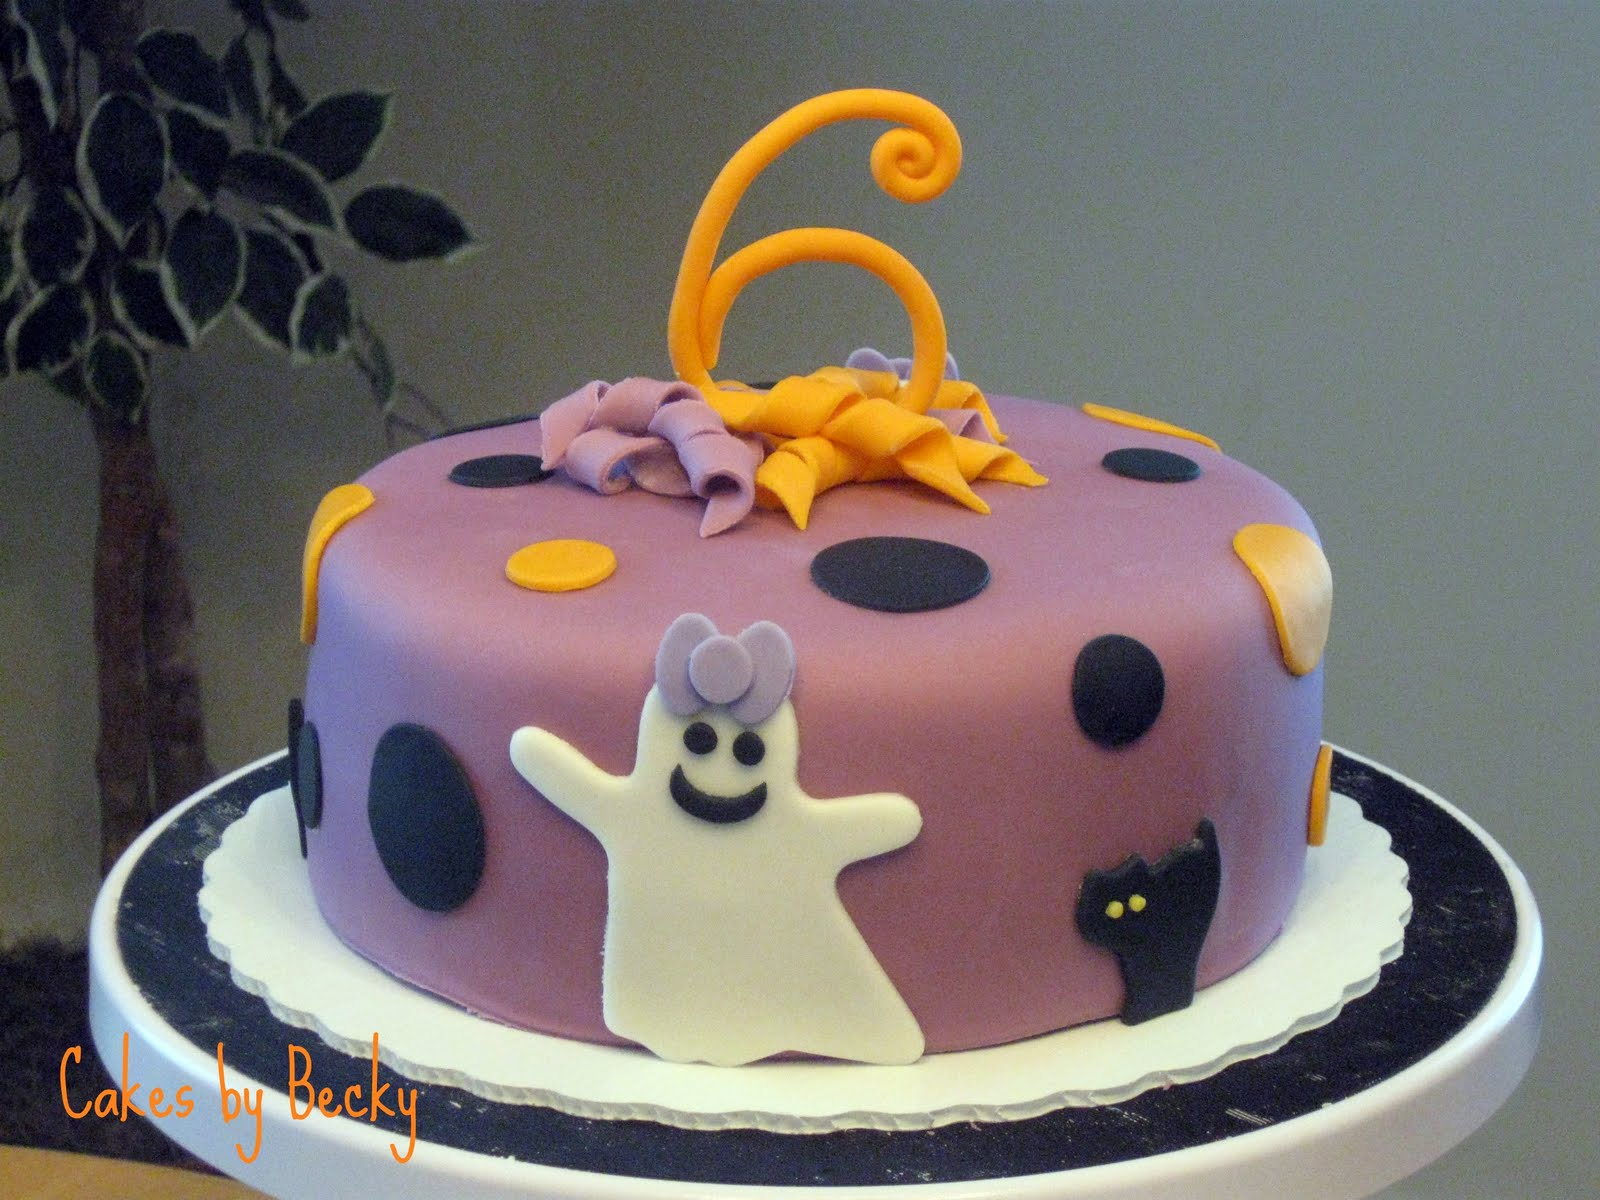 Cakes by Becky Not So Scary Halloween Birthday Cake